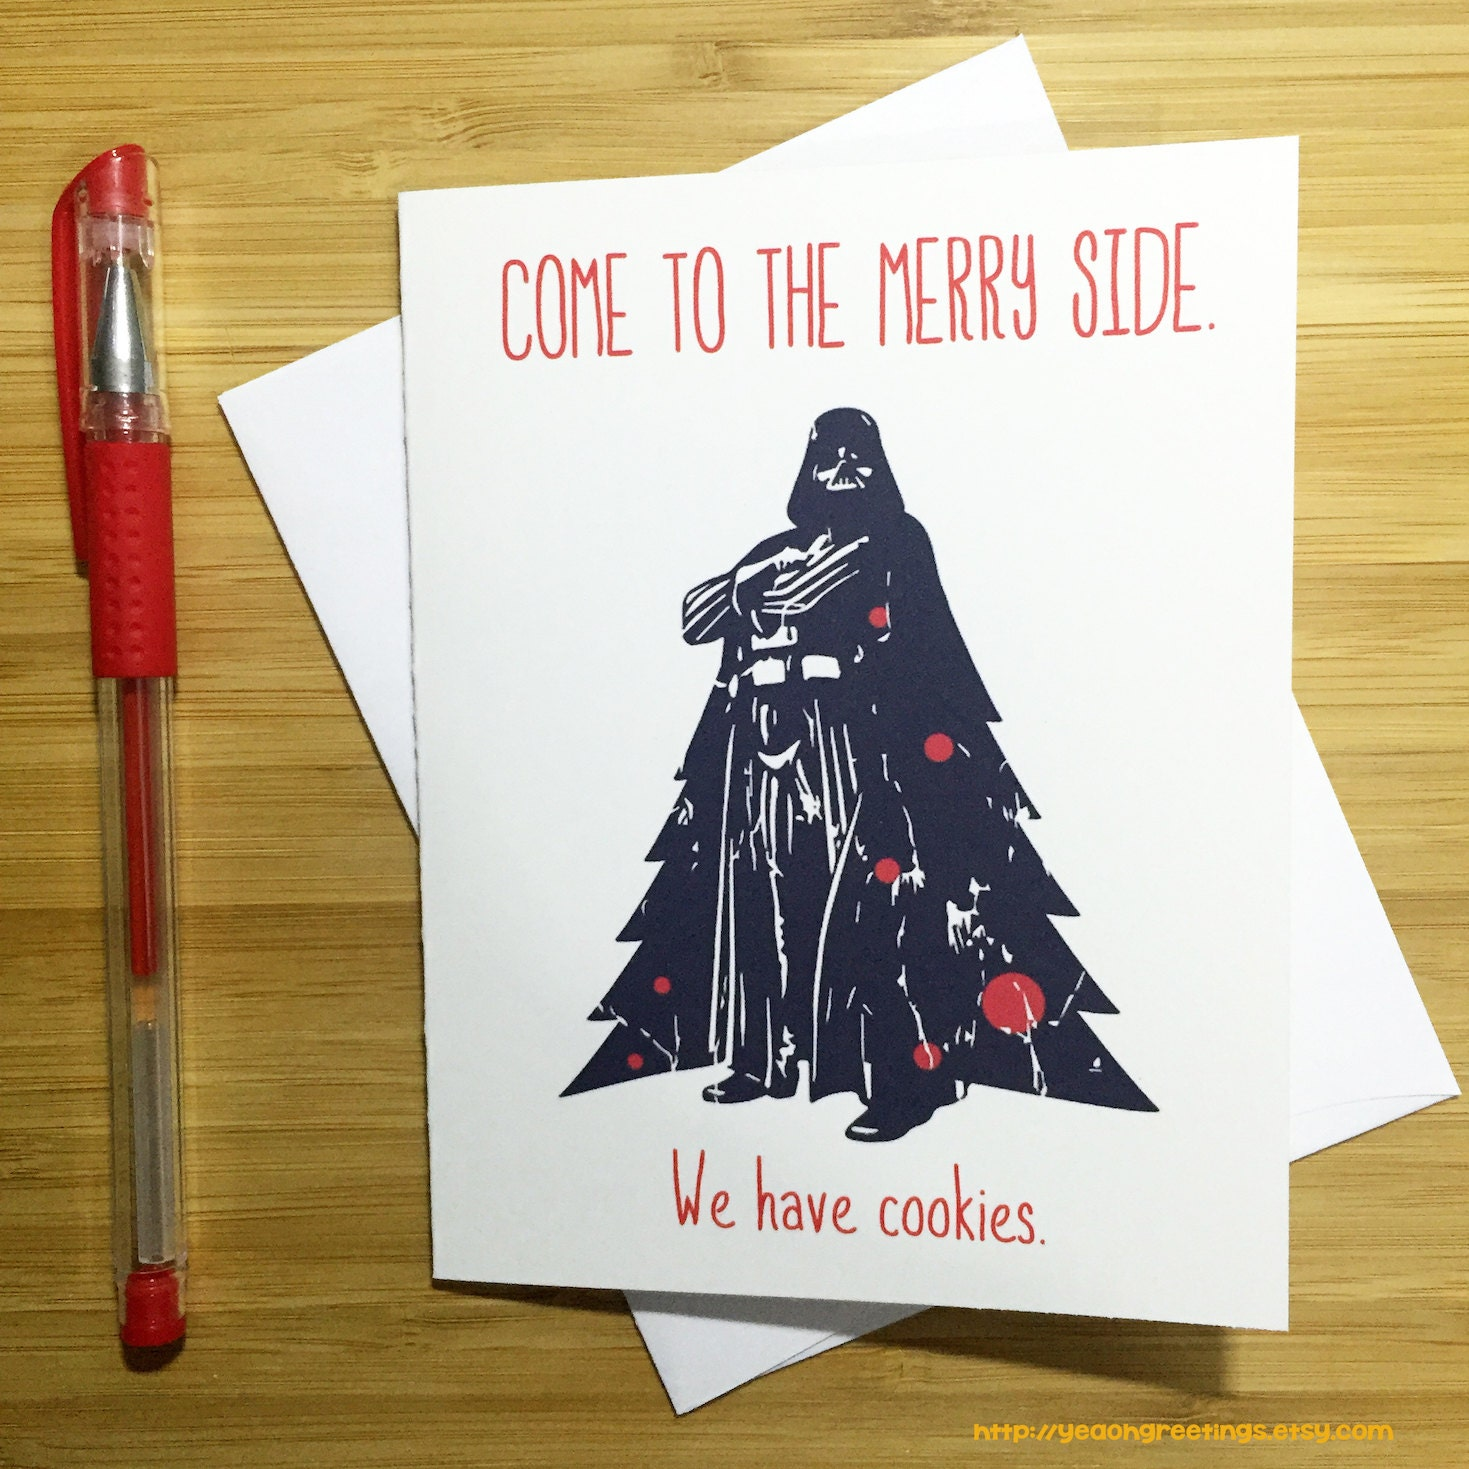 Come to the merry side christmas card funny christmas card zoom kristyandbryce Gallery